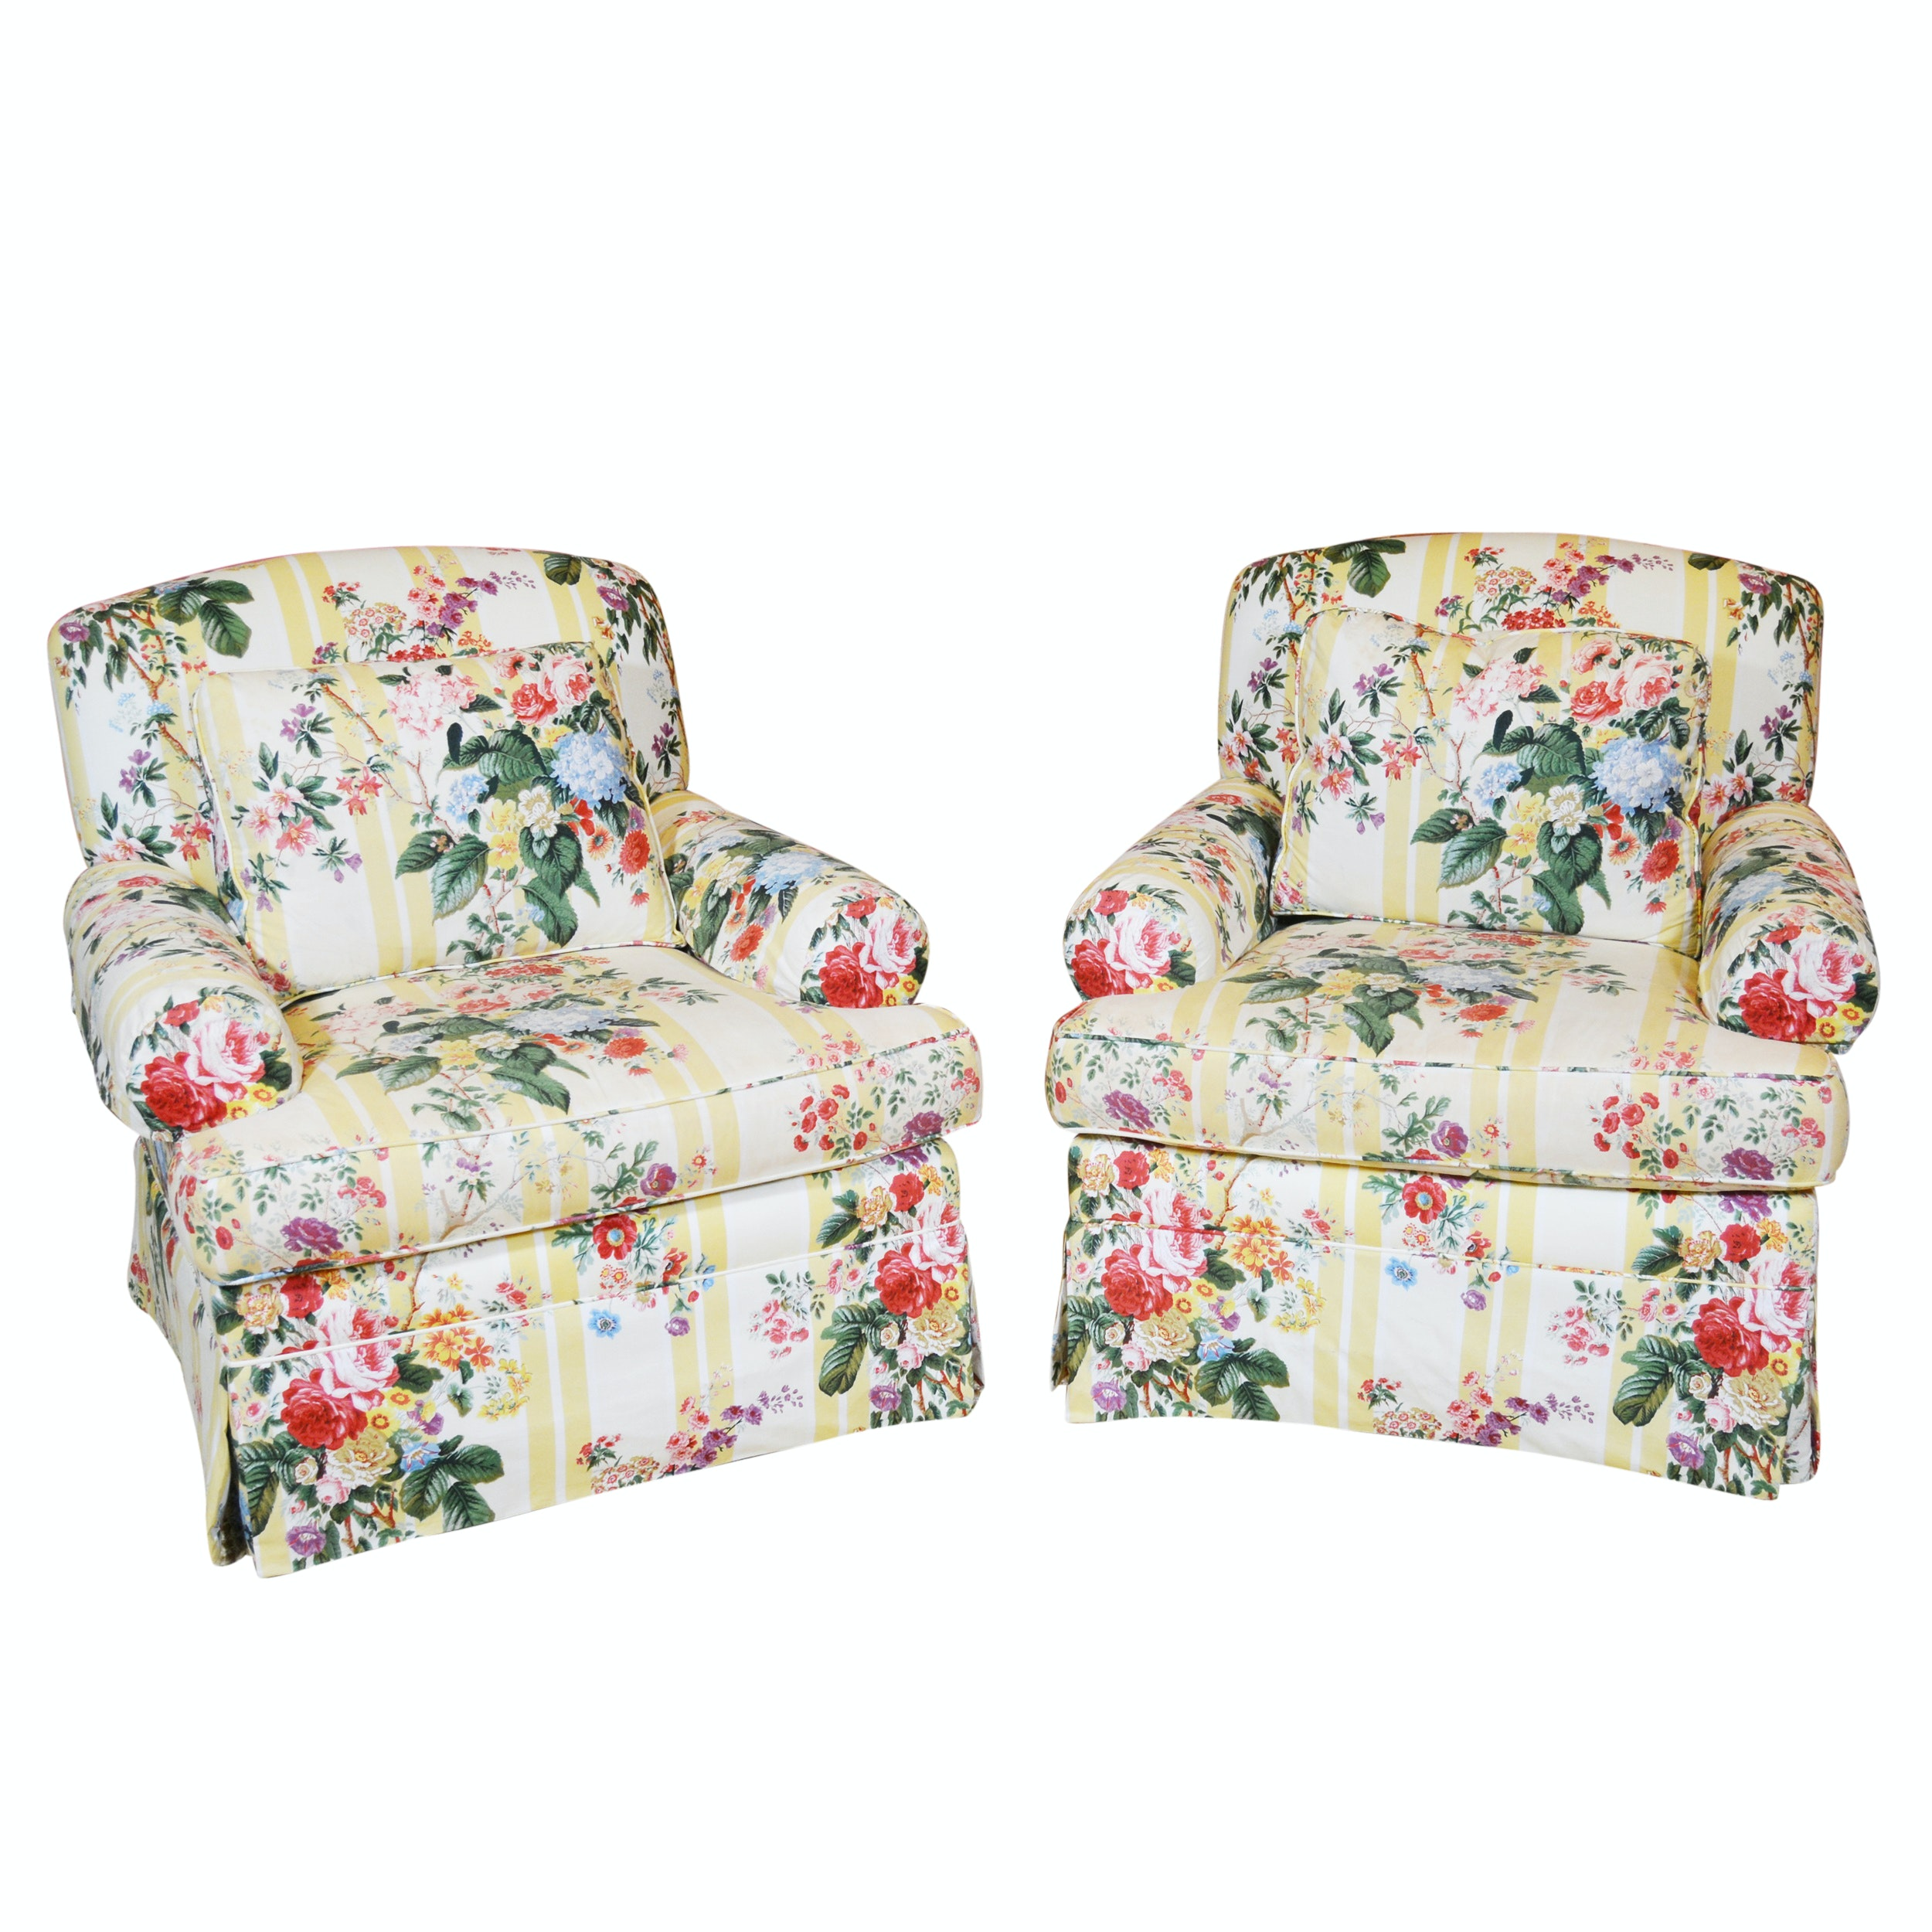 Floral Stripe Upholstered Swivel Chairs By Lee Coggin ...